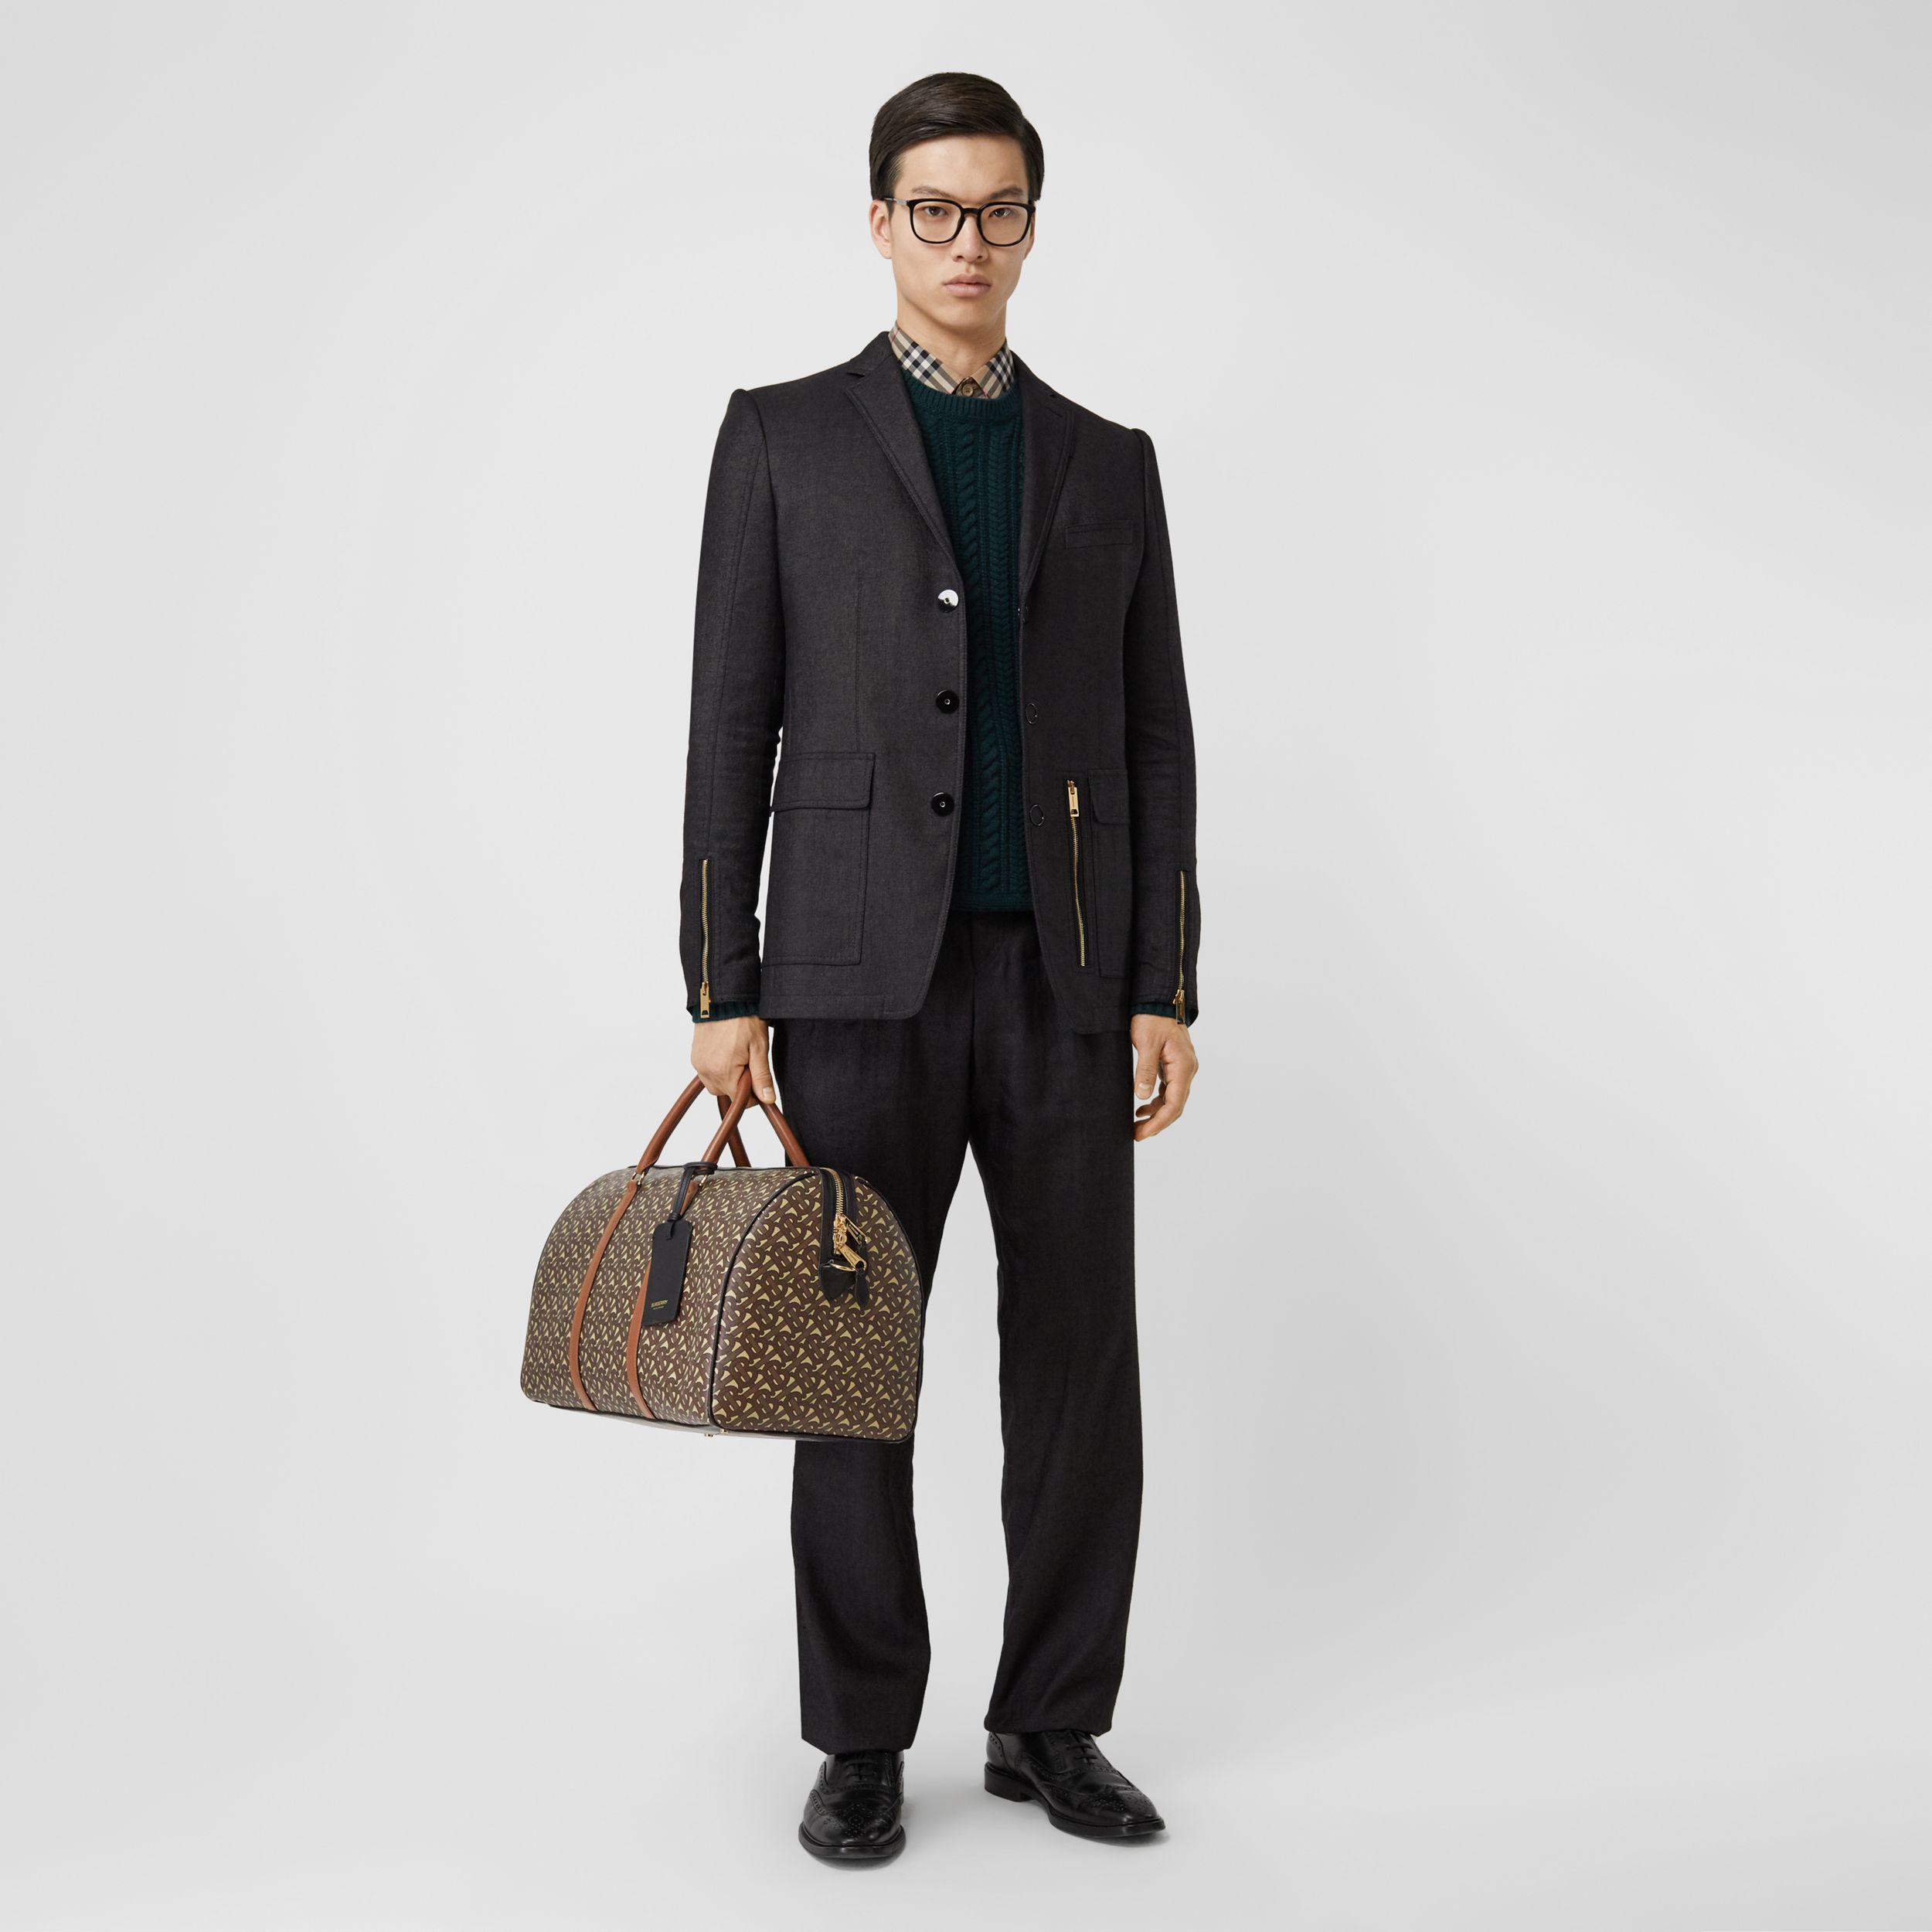 Monogram Print E-canvas and Leather Holdall in Bridle Brown - Men | Burberry United Kingdom - 3